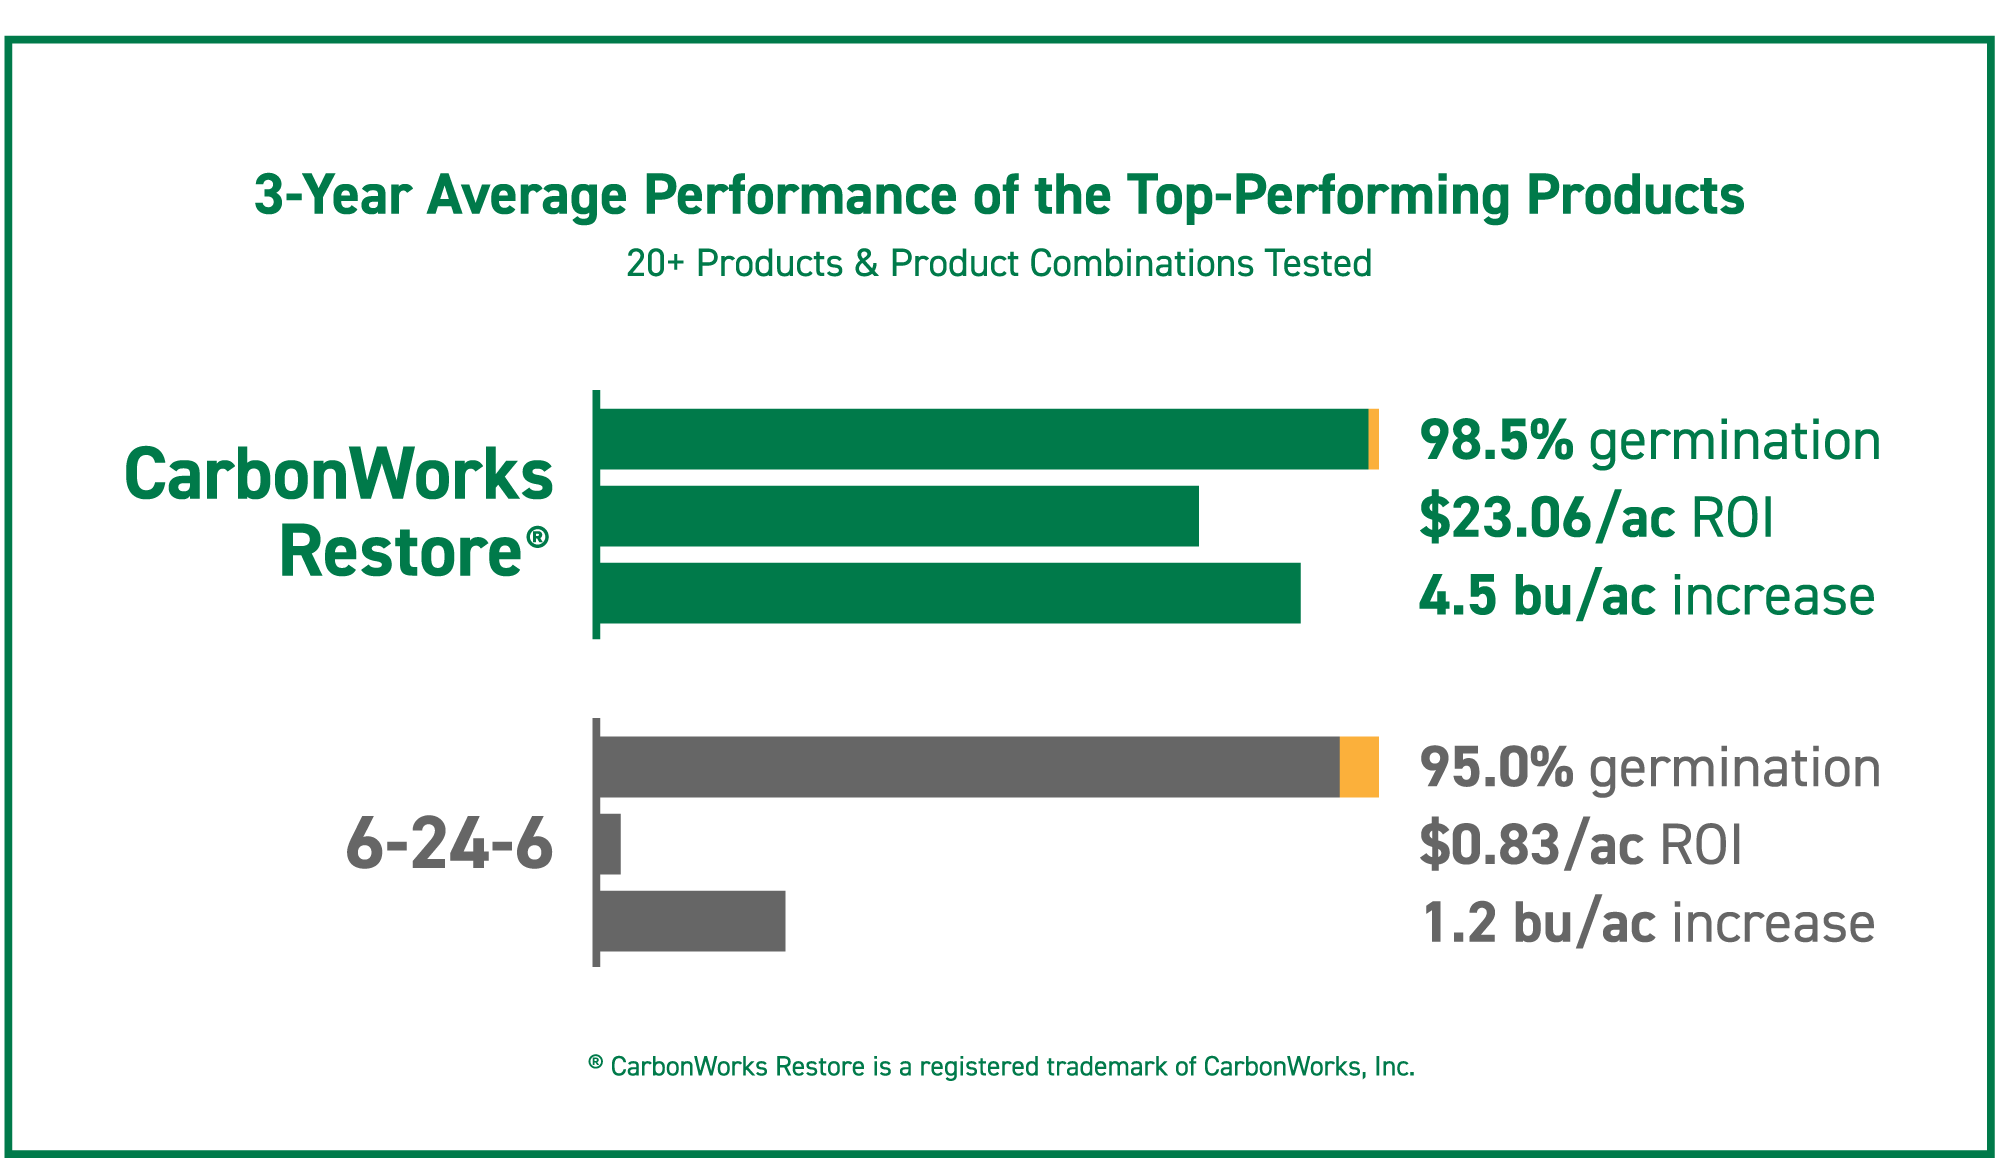 Results from the top-performing soybean starters - CarbonWorks Restore and 6-24-6